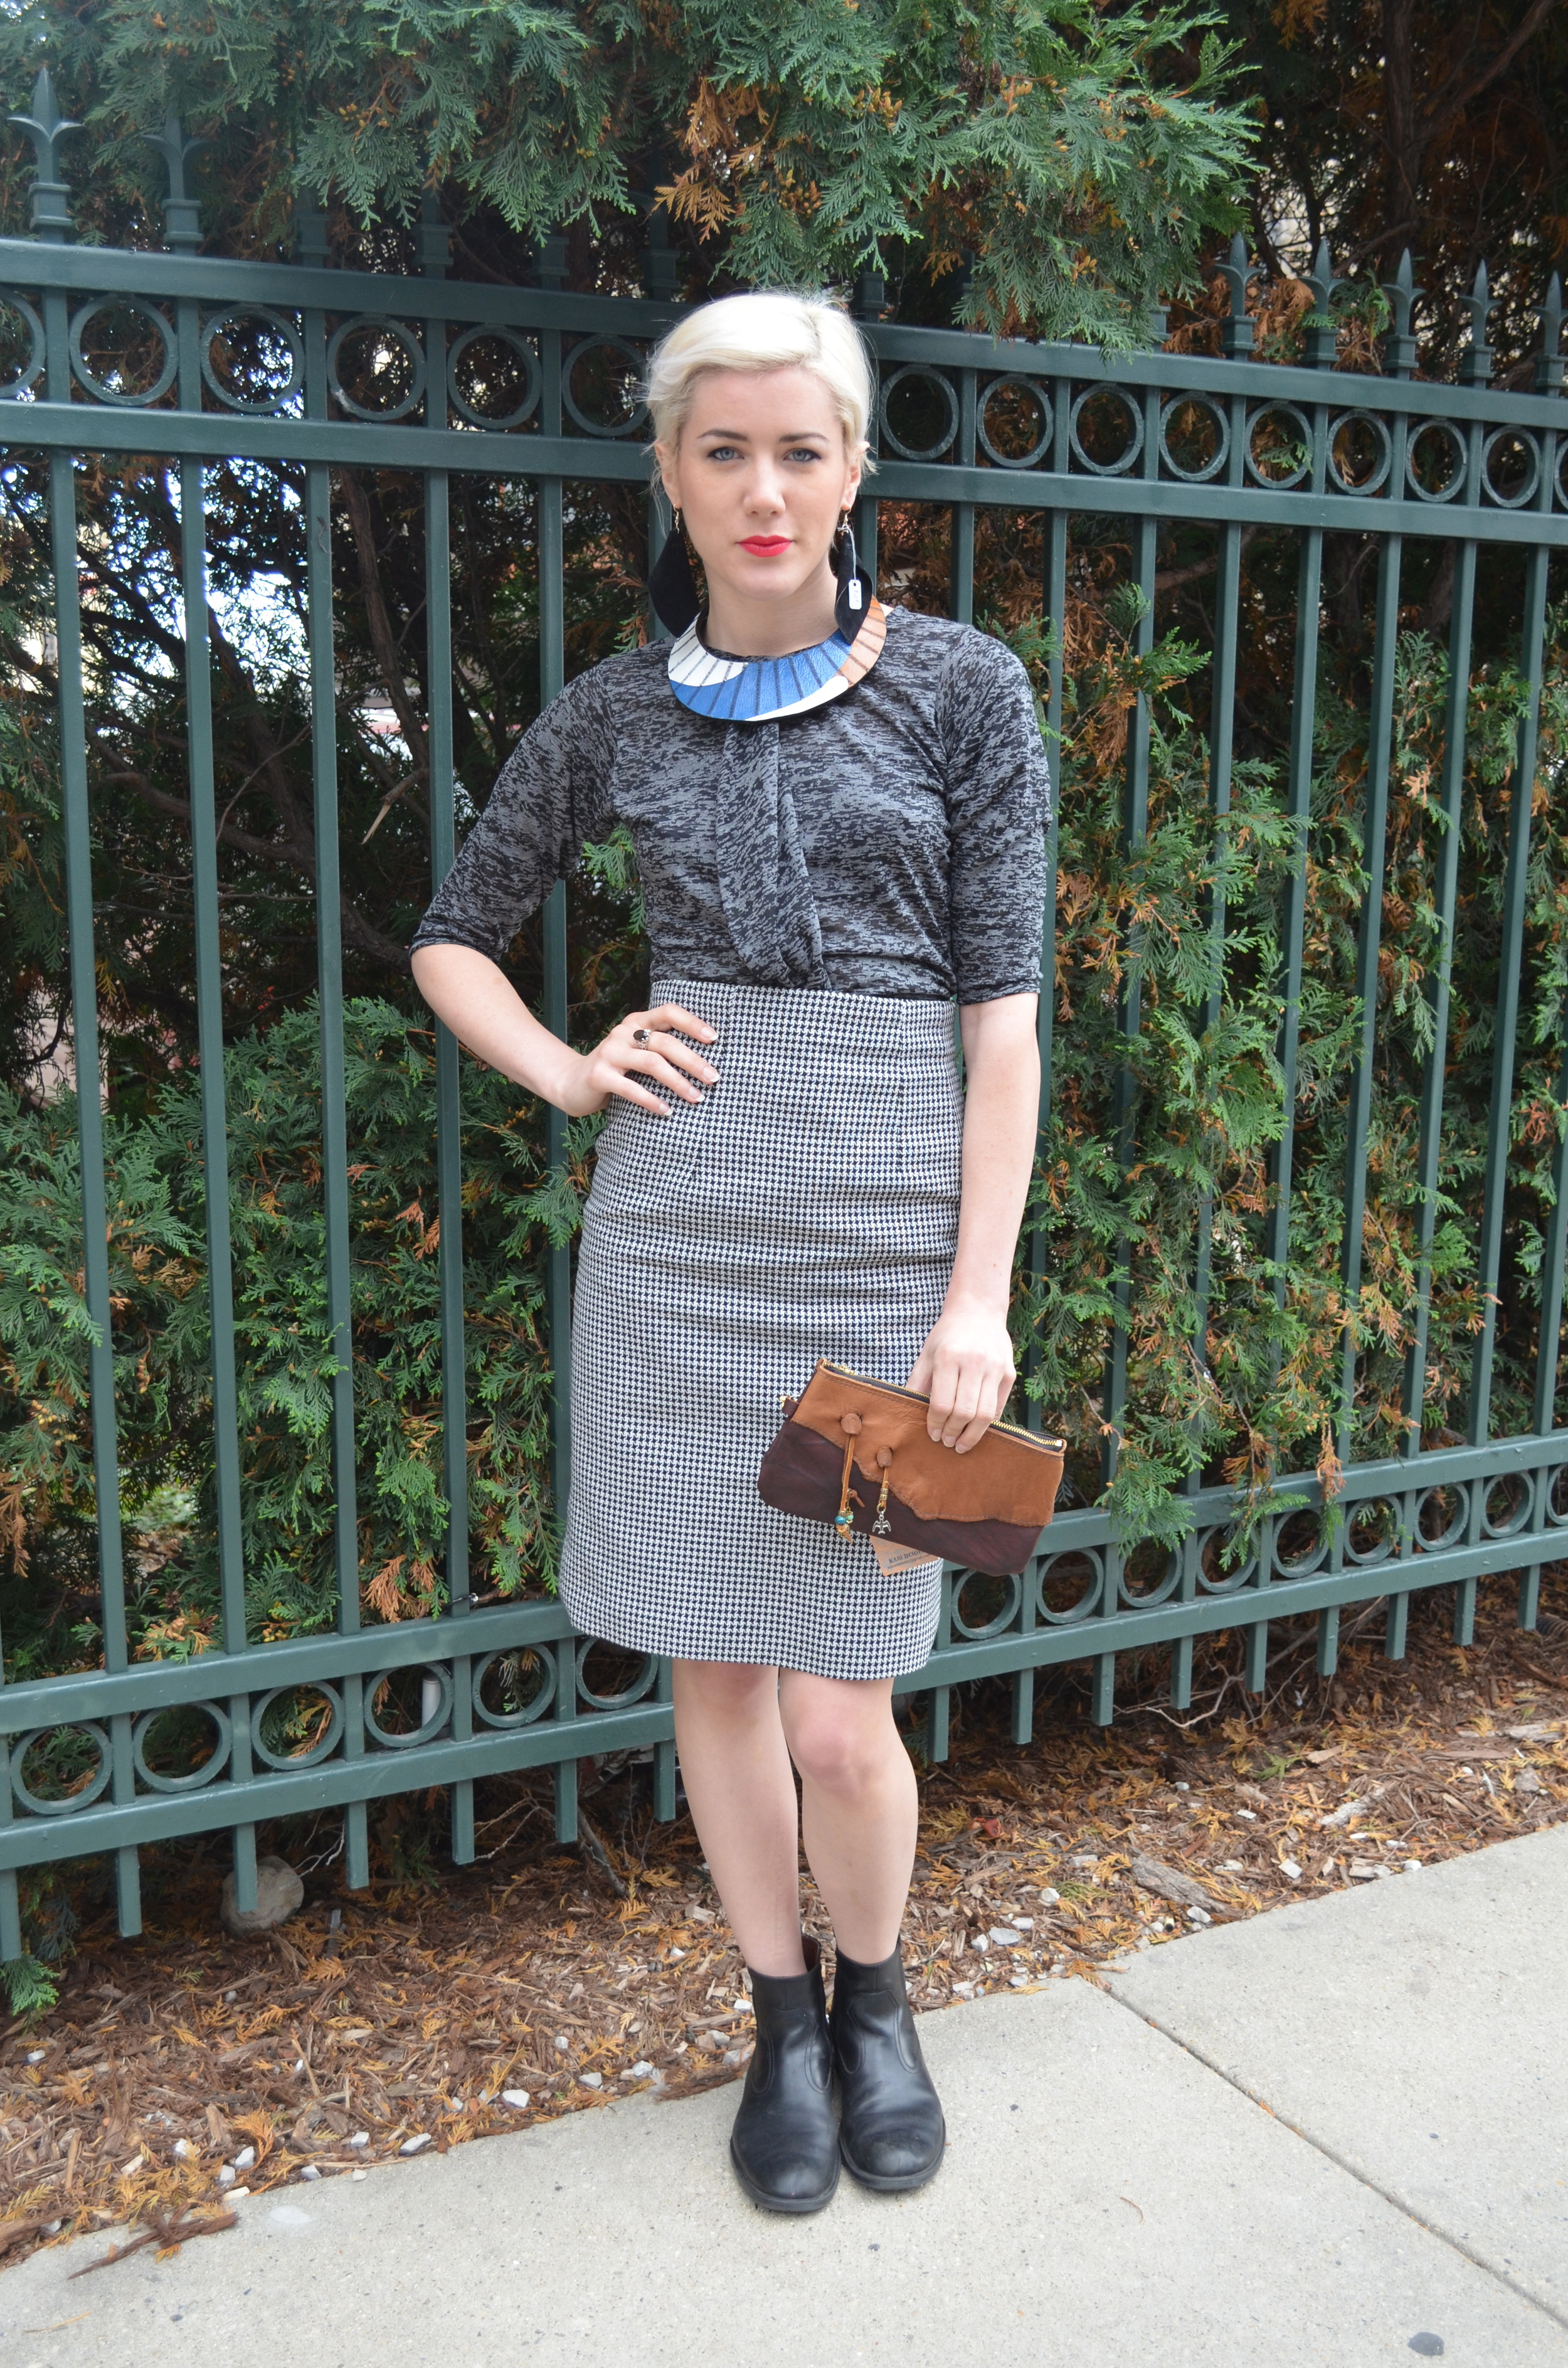 Necklace by  Bethany Procopio   Blouse by  Tessa Koller   Skirt by  Theresa Dougar   Clutch by  Kari Demien   Earrings by  Bree Rose